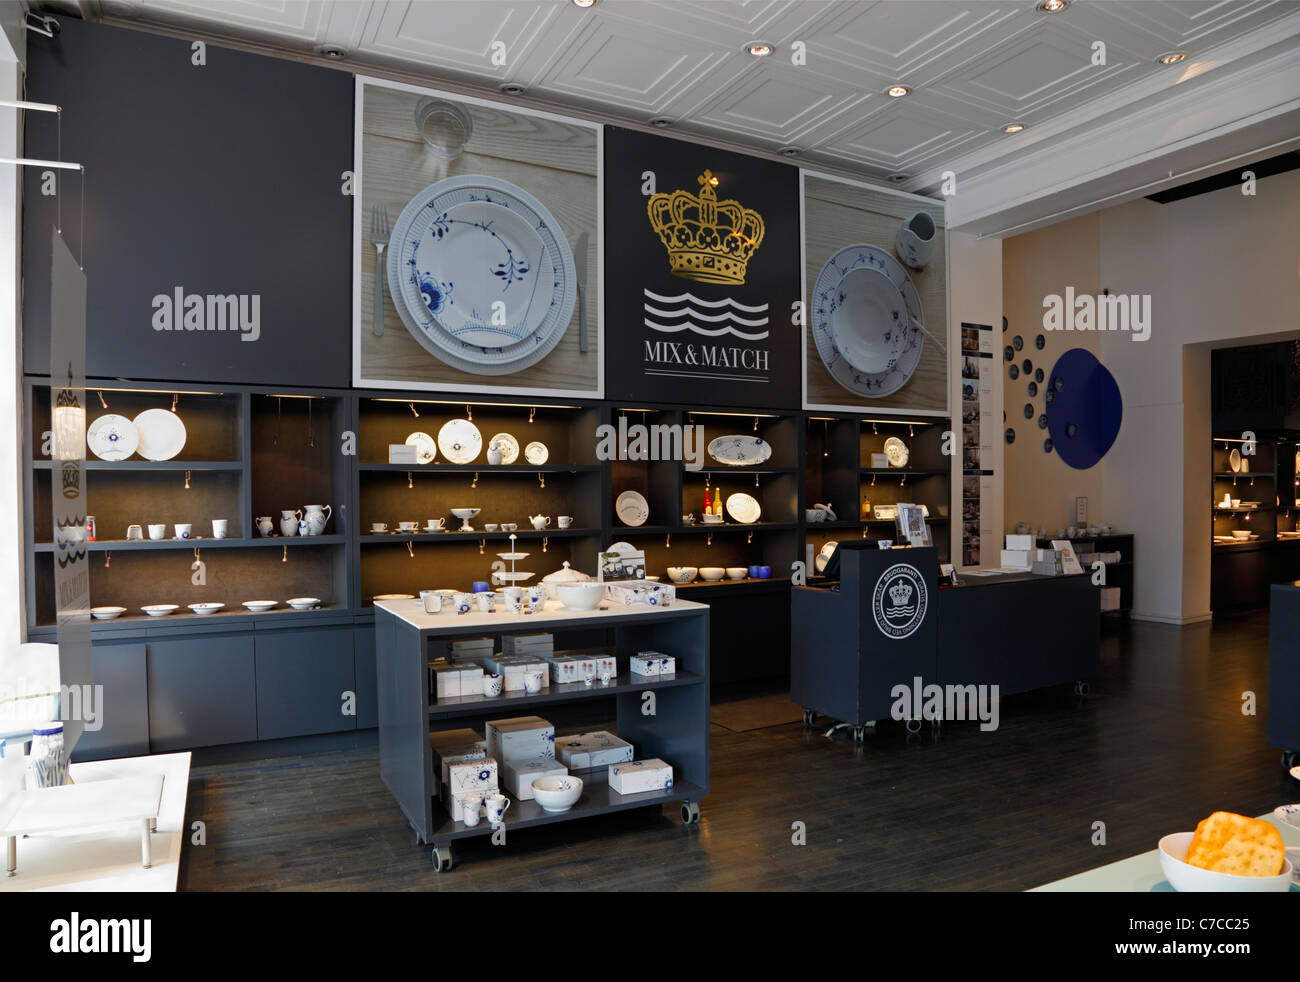 Display of Blue Fluted Mega design in the Royal Copenhagen porcelain shop on the main shopping and pedestrian street - Stock Image